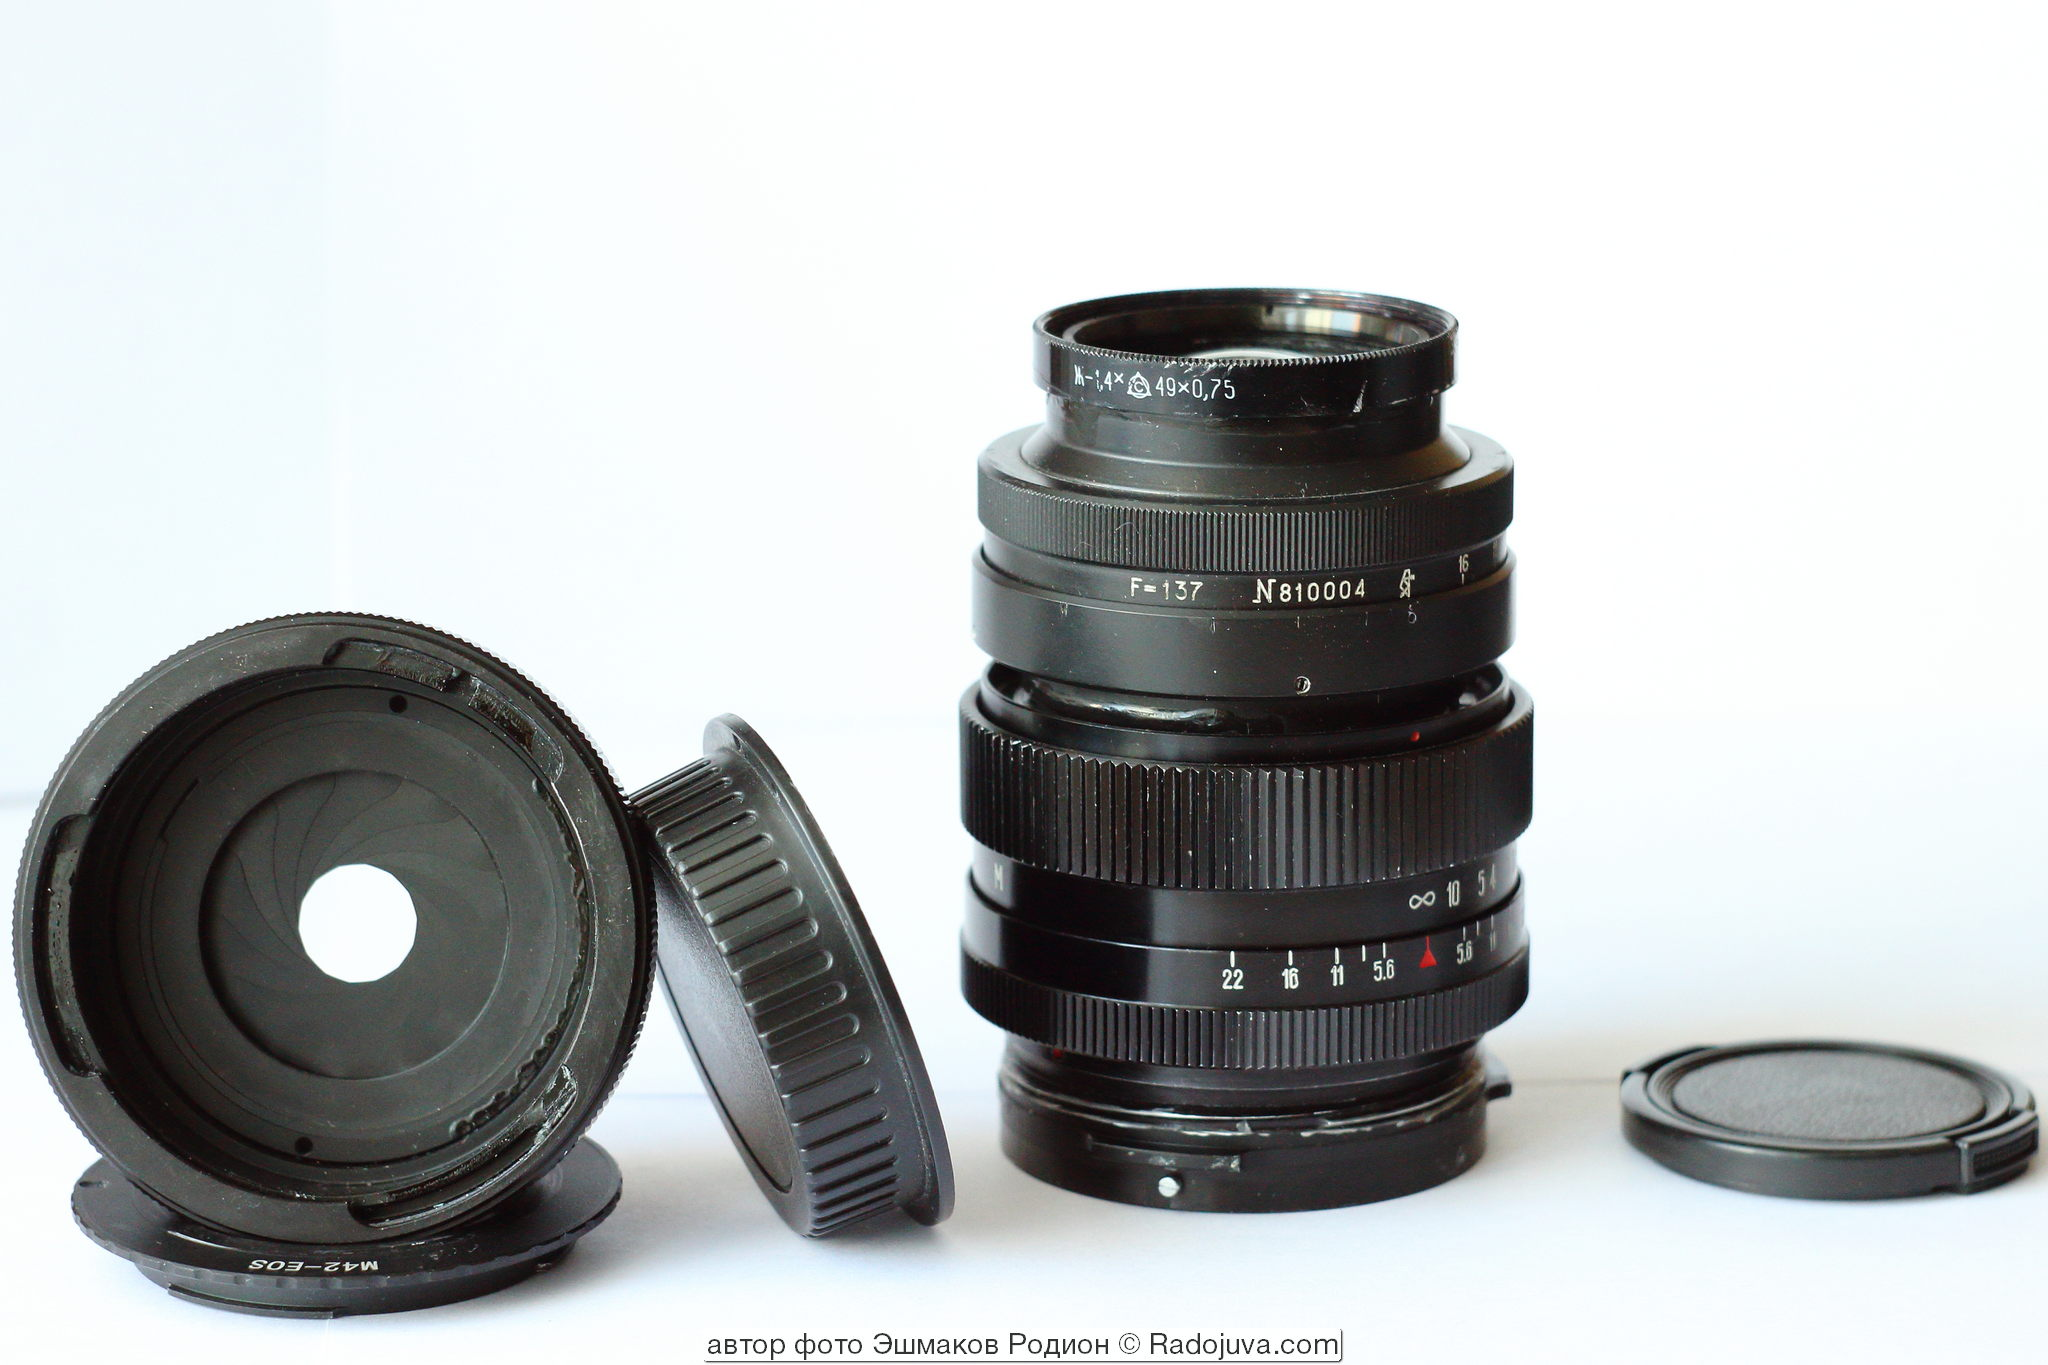 Adapted lens and adapter rings for mounting on a Canon camera